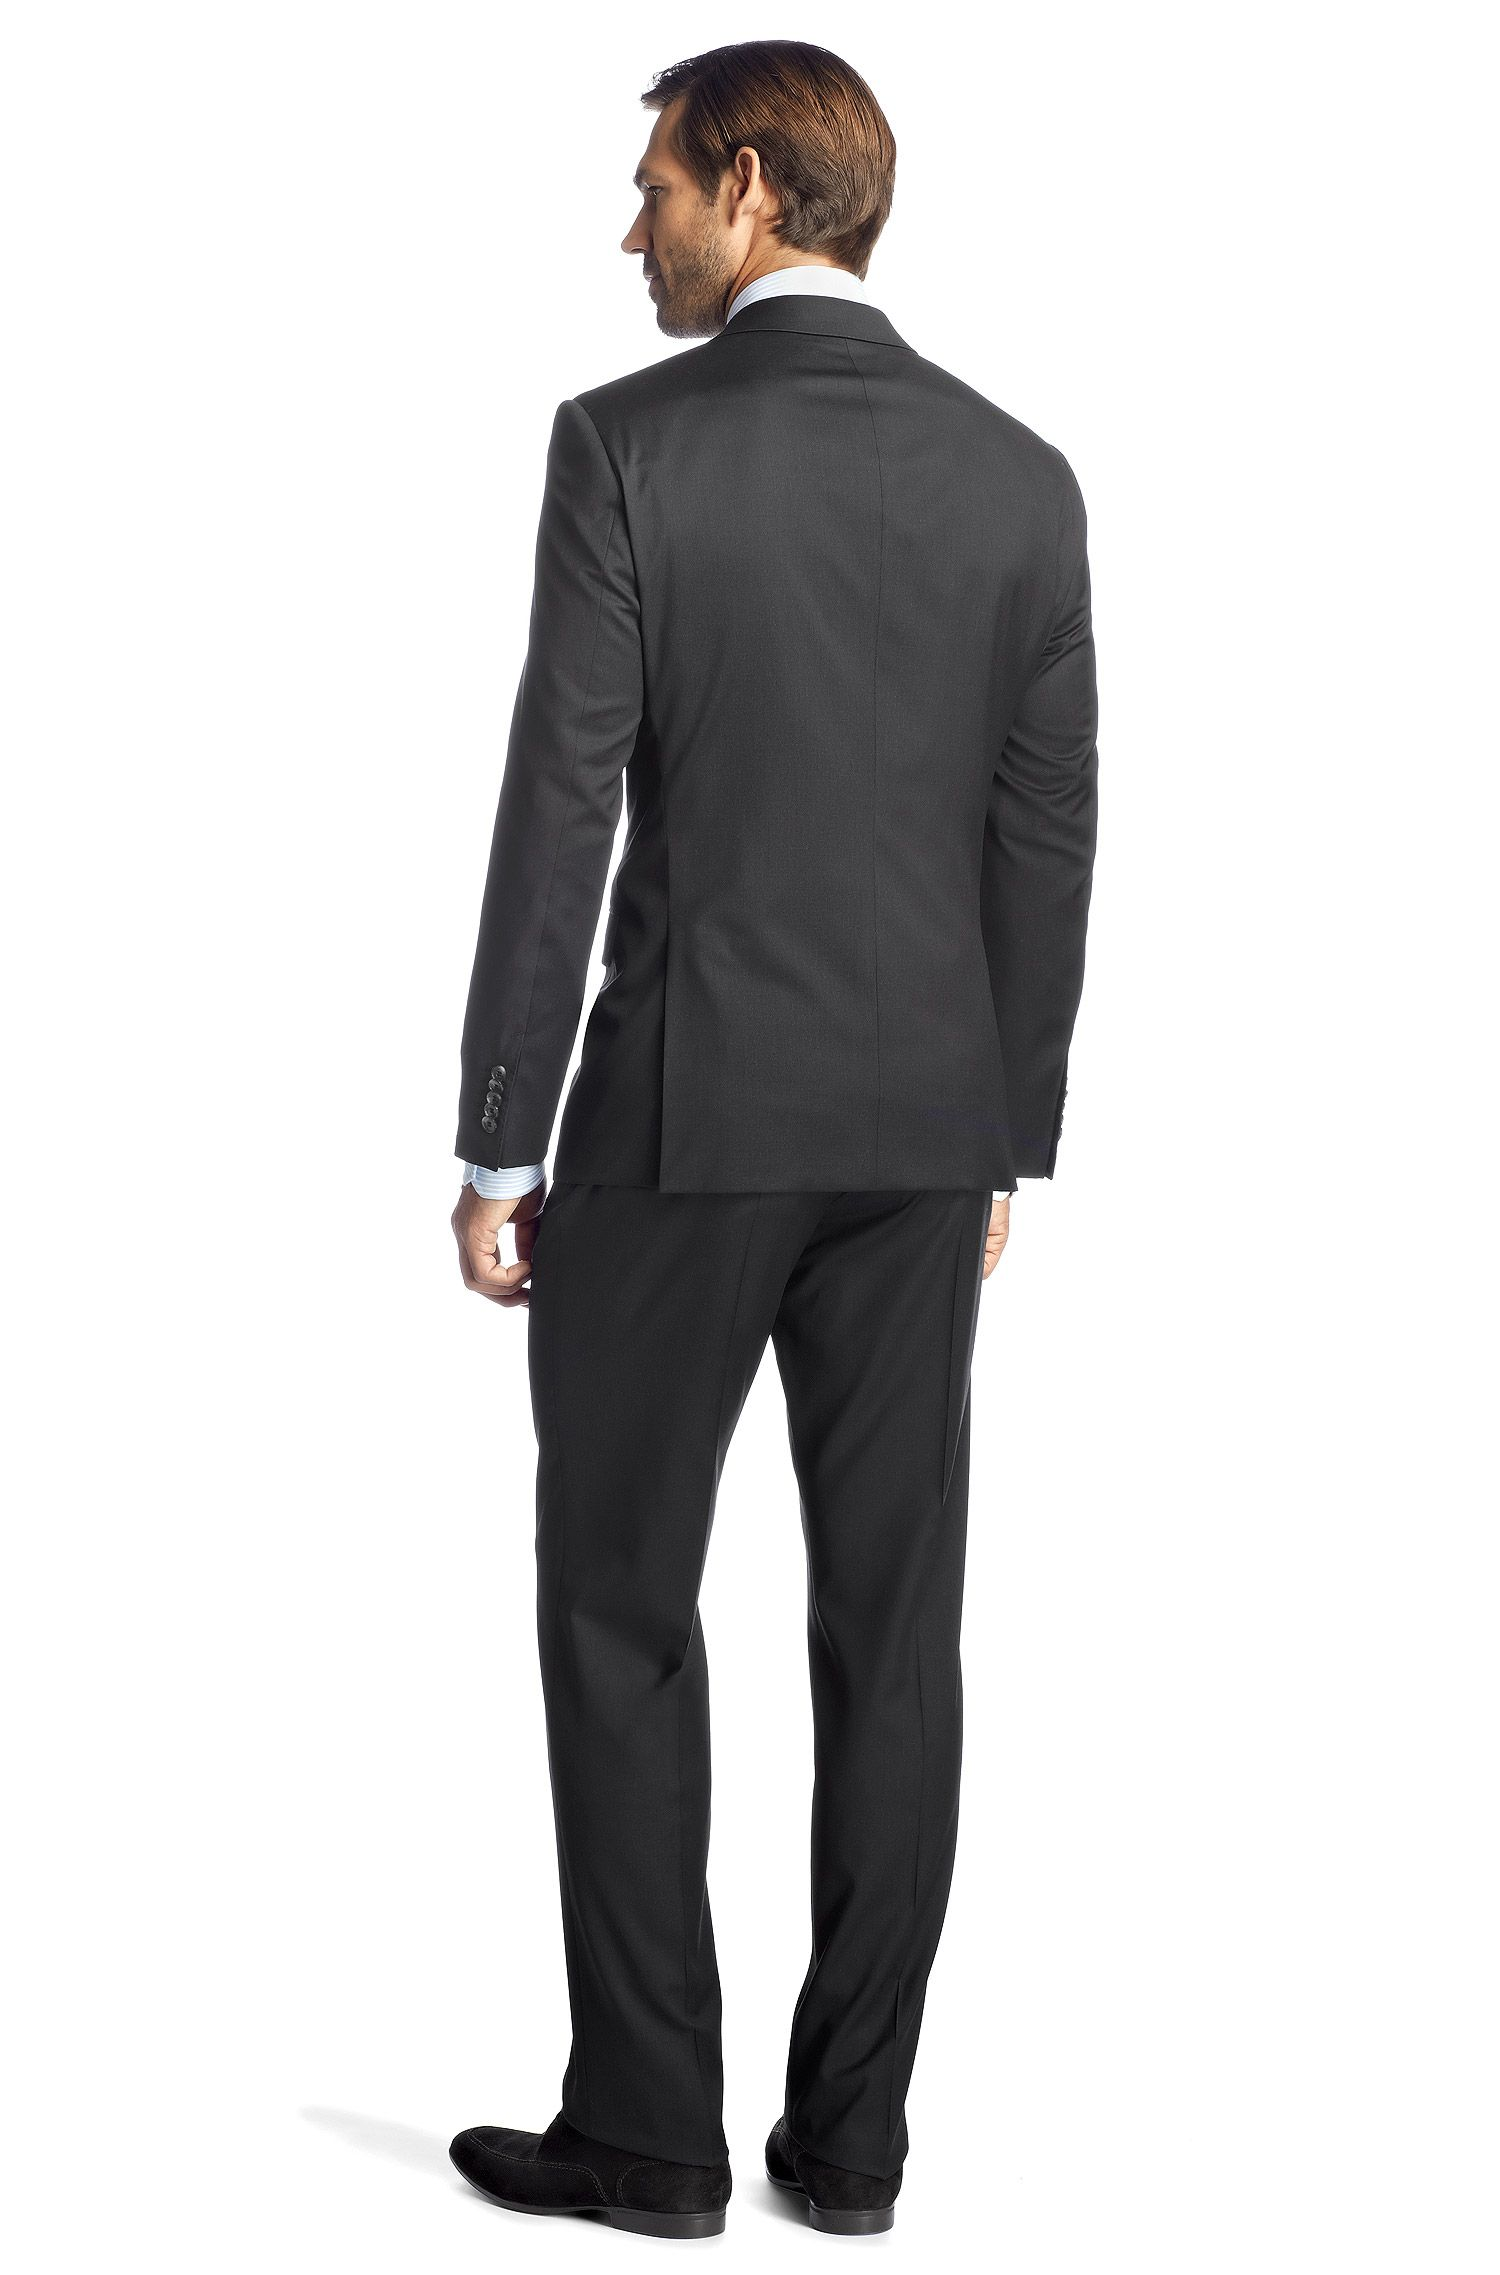 Costume de coupe Regular Fit, Howard1/Court2, Anthracite